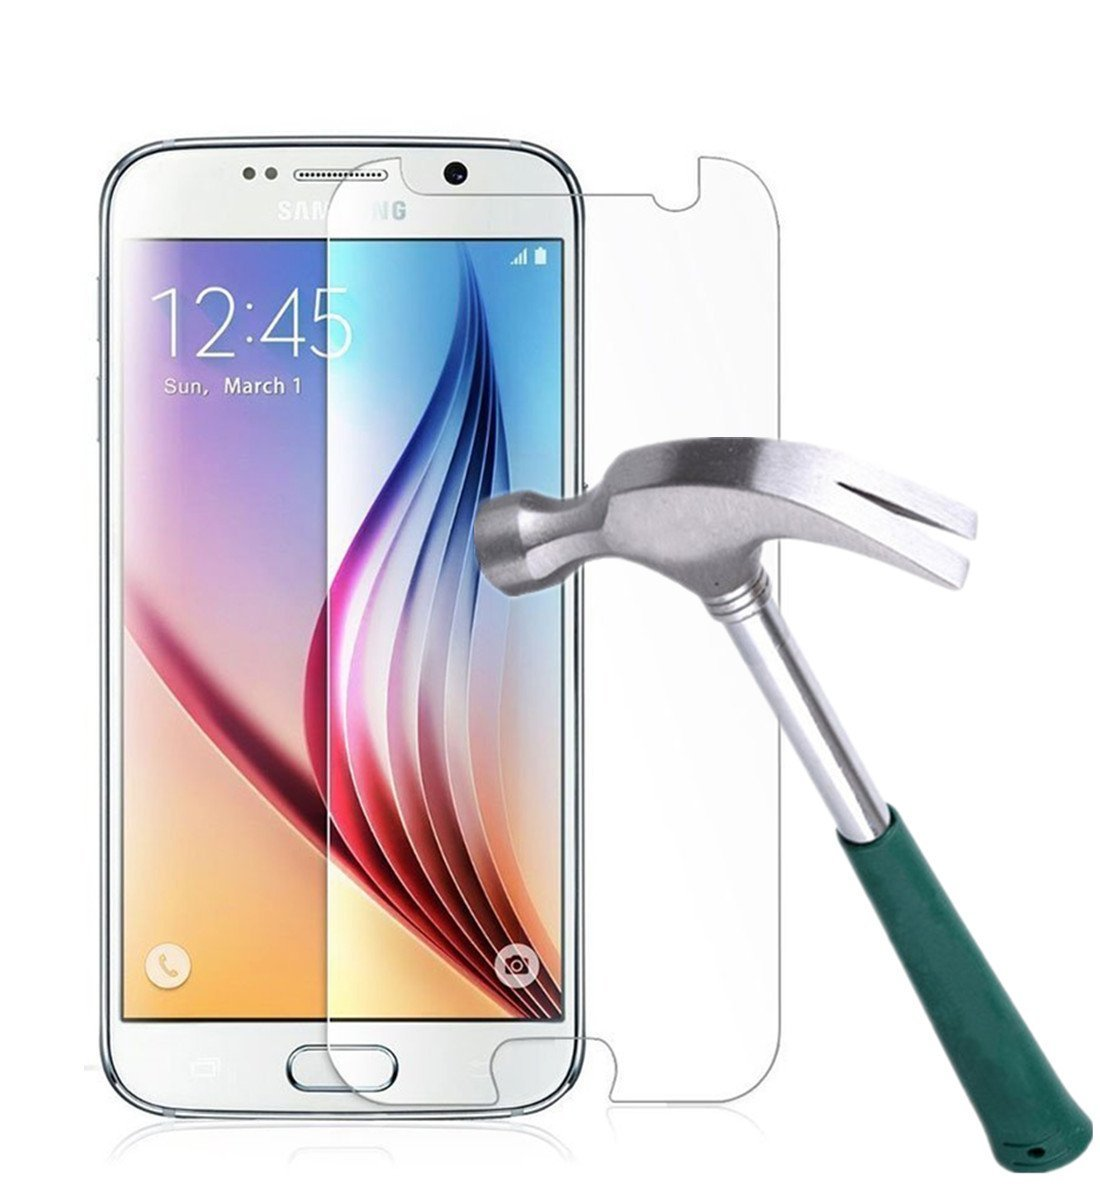 Galaxy S6 Screen Protector,TANTEK [Bubble-Free][HD-Clear][Anti-Scratch][Anti-Glare][Anti-Fingerprint] Premium Tempered Glass Screen Protector for Samsung Galaxy S6,[Lifetime Warranty]-[1Pack]